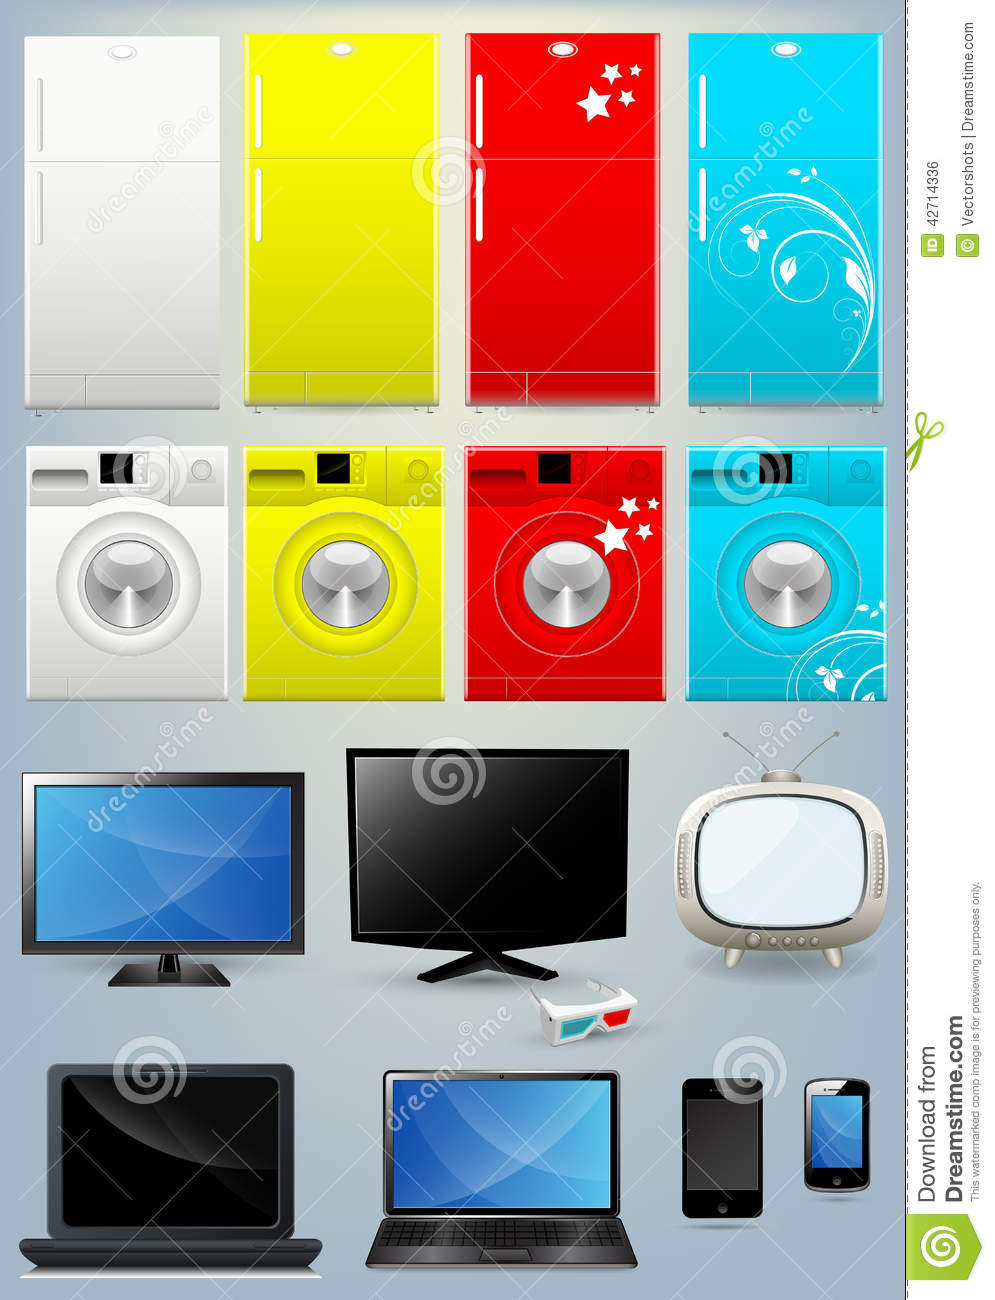 Fridge Washing Machine Tv Laptop And Mobile Vectors